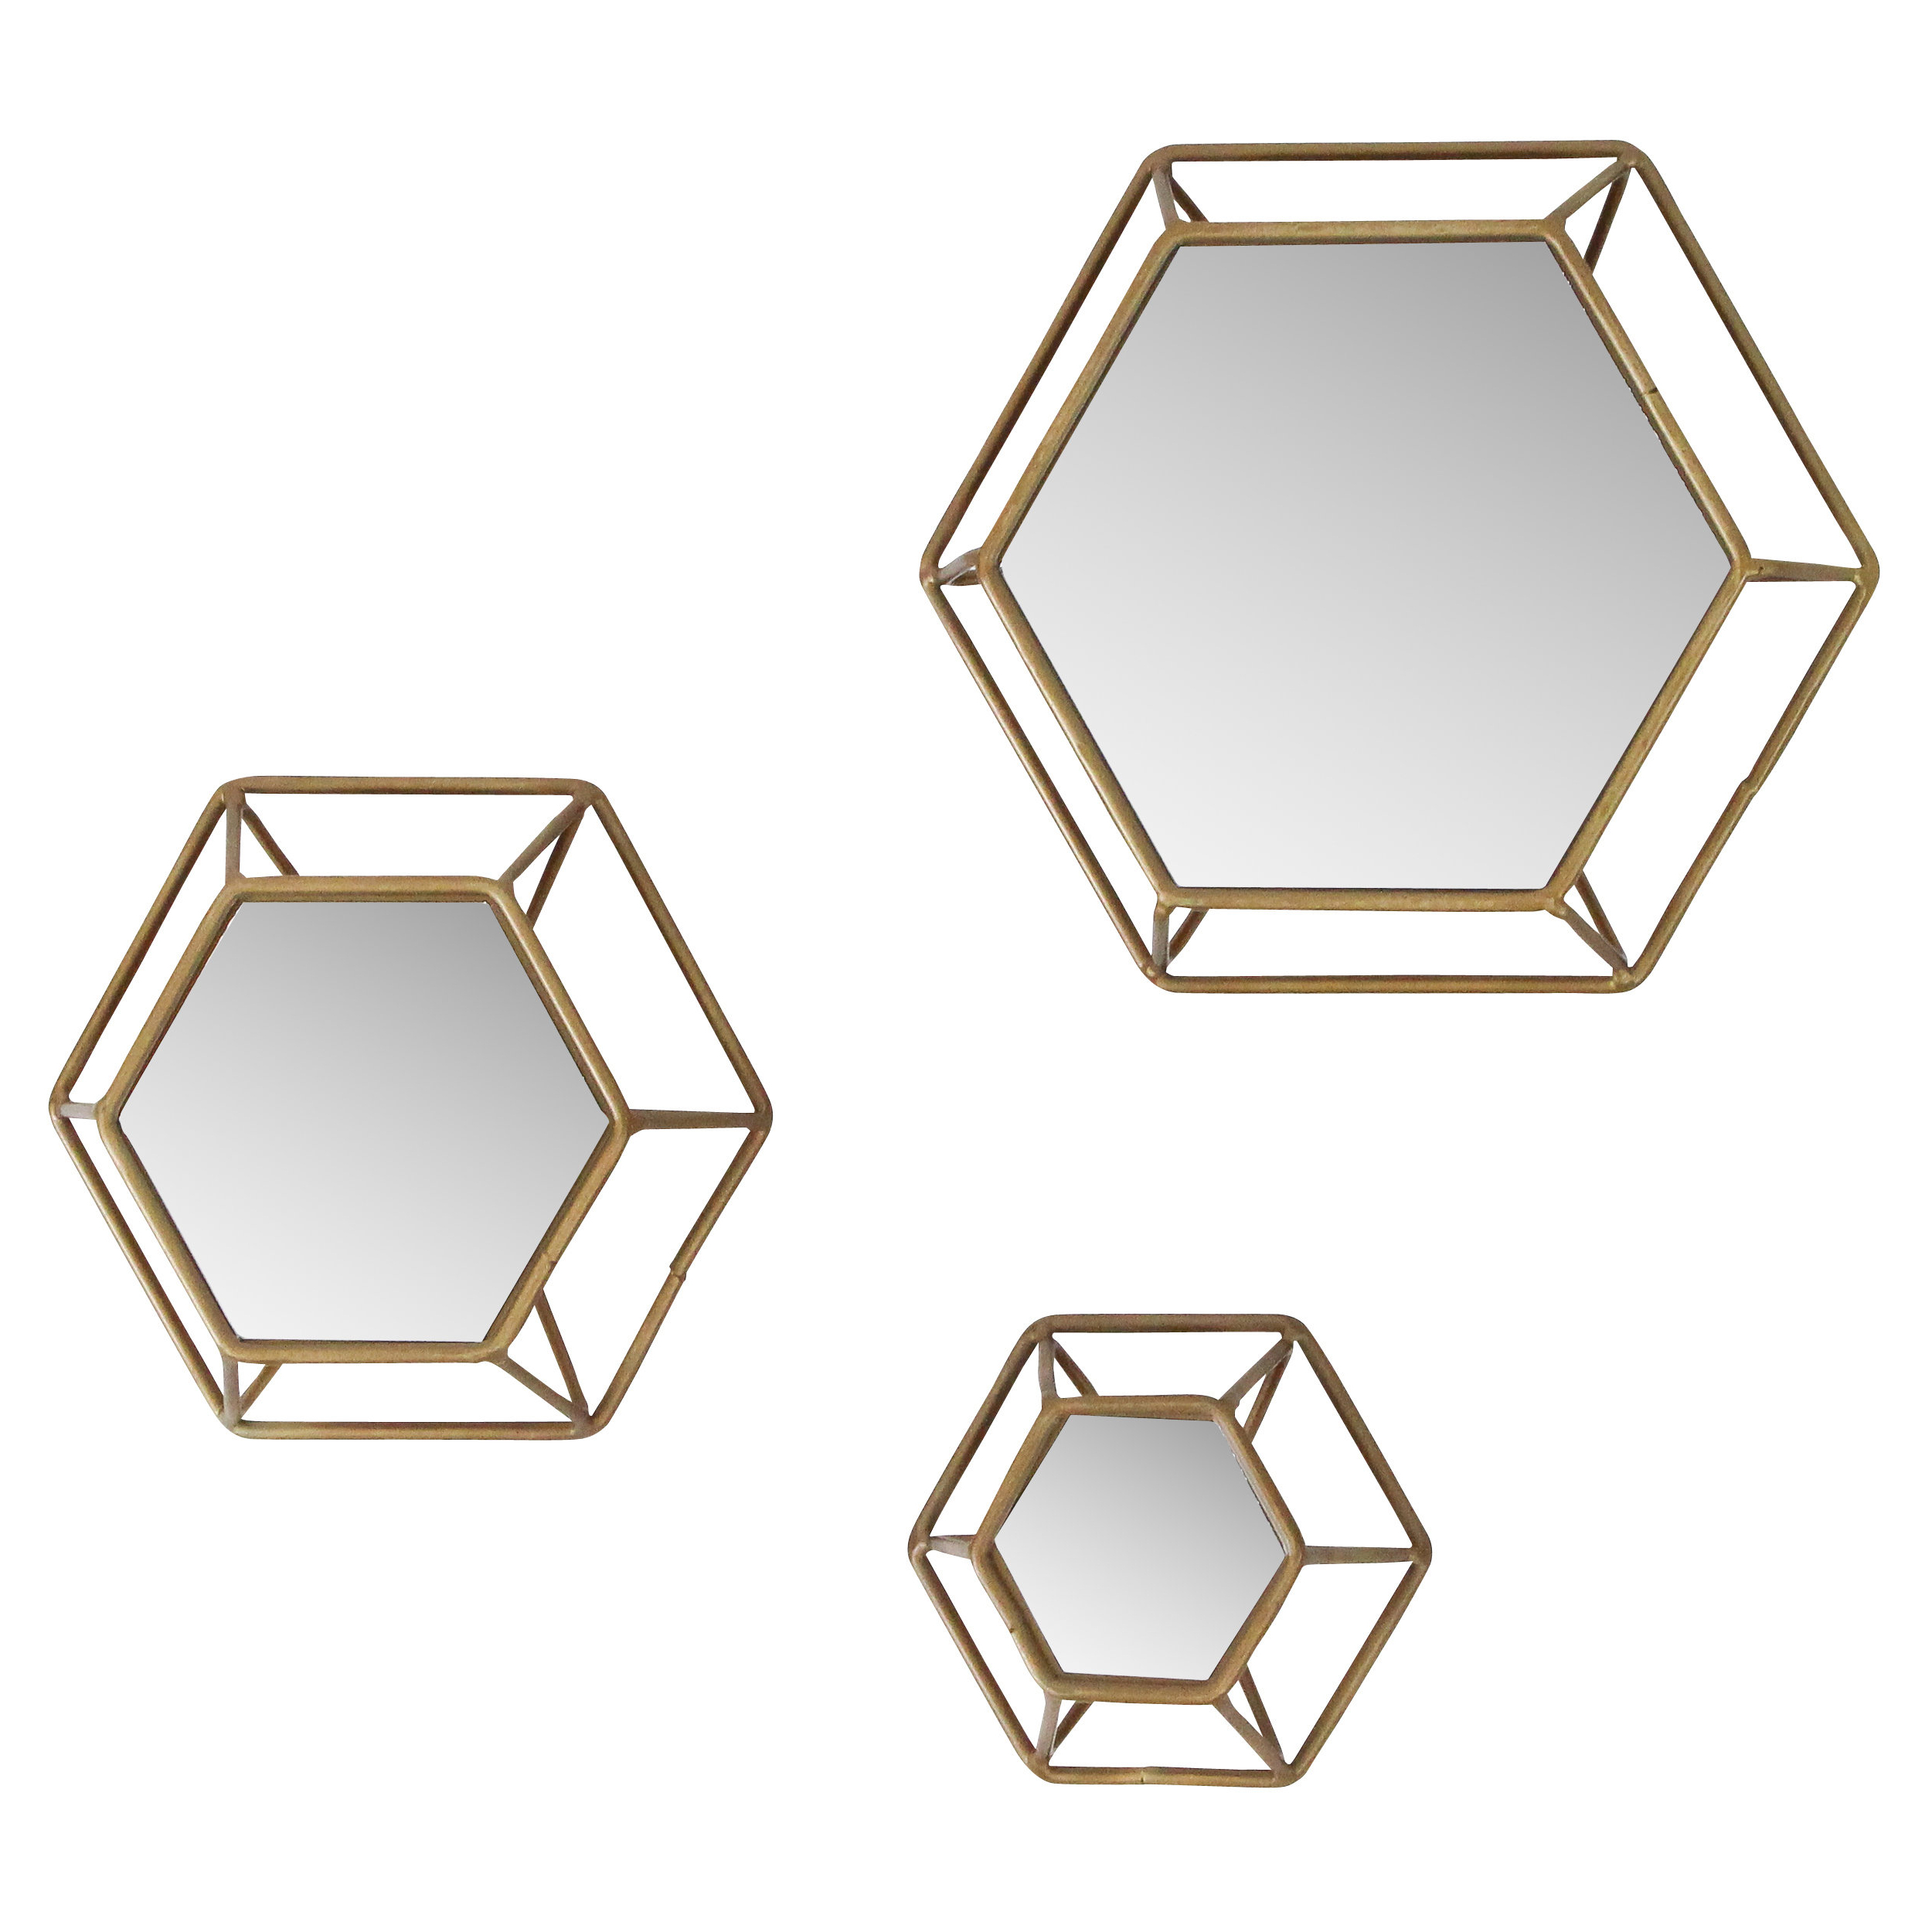 Yahoue 3 Piece Hexagonal Wall Mirror Set For Recent 3 Piece Dima Hanging Modern & Contemporary Mirror Sets (View 20 of 20)